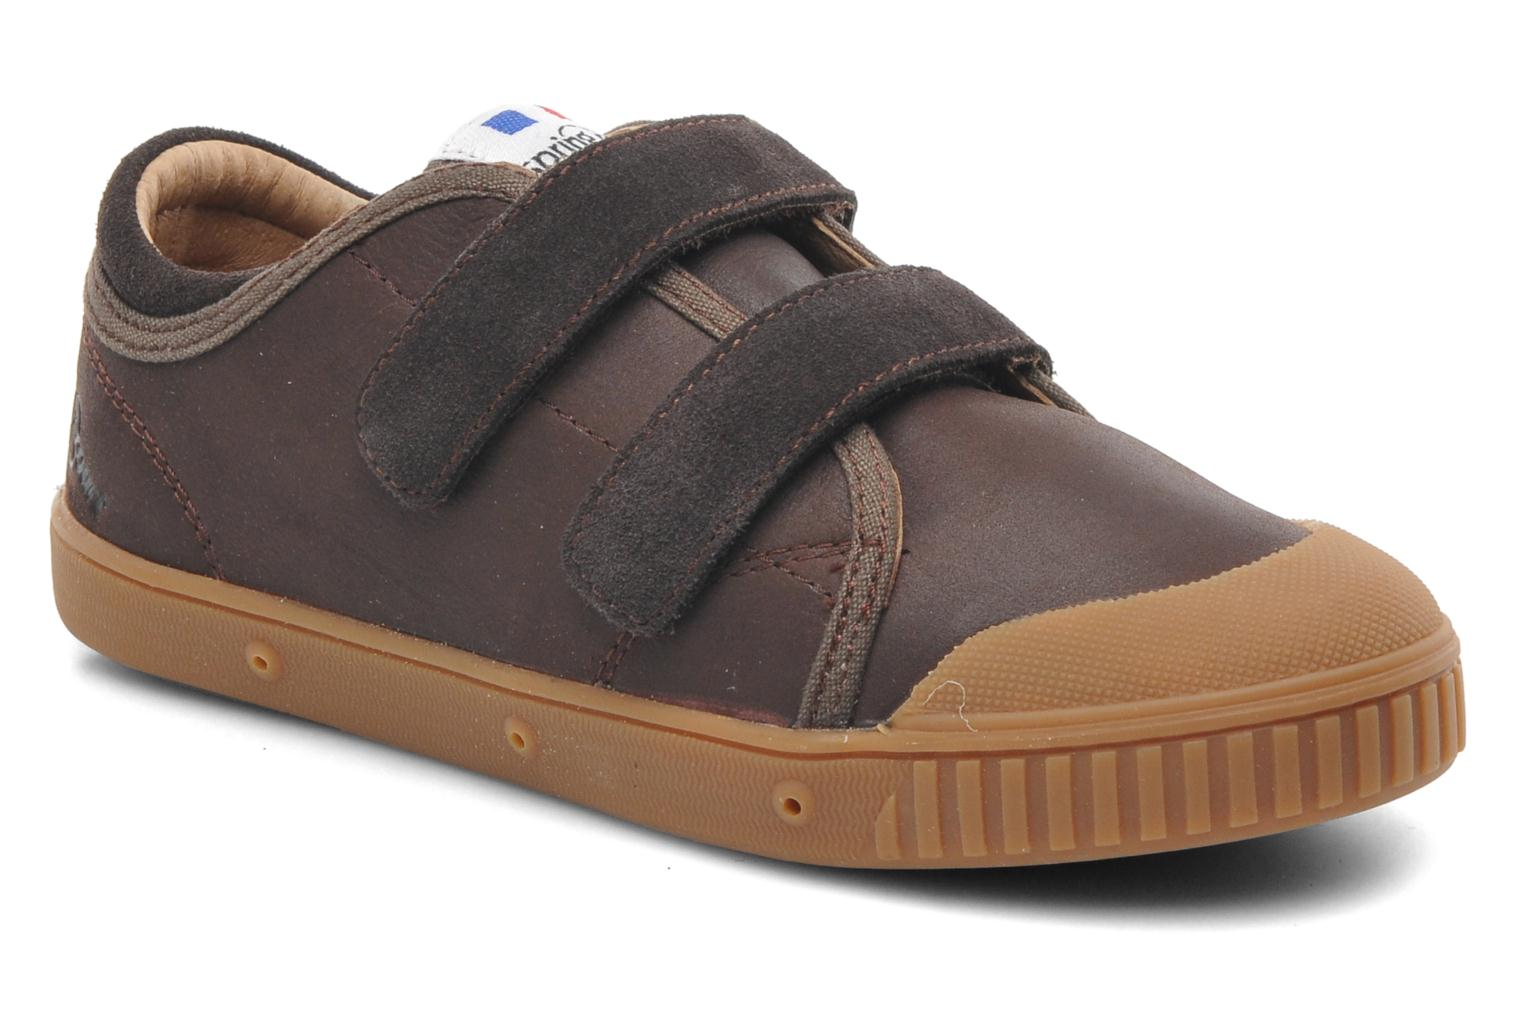 Sneakers GE1V Leather by Spring Court